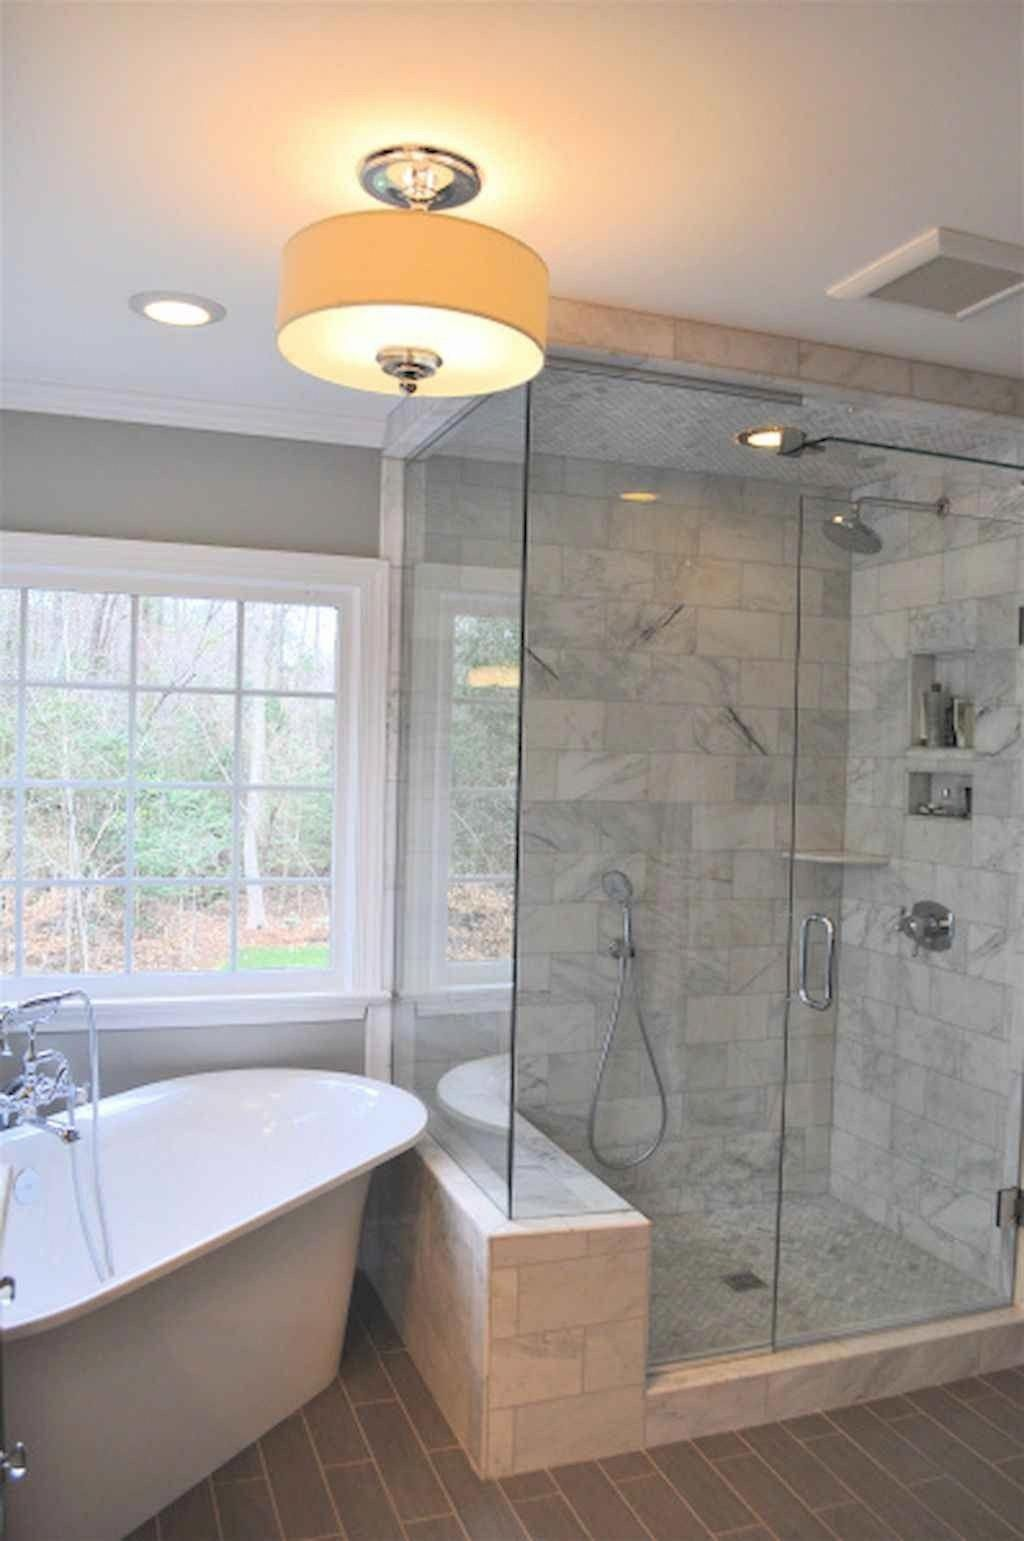 advice techniques as well as resource with regard to on best bathroom renovation ideas get your dream bathroom id=23641